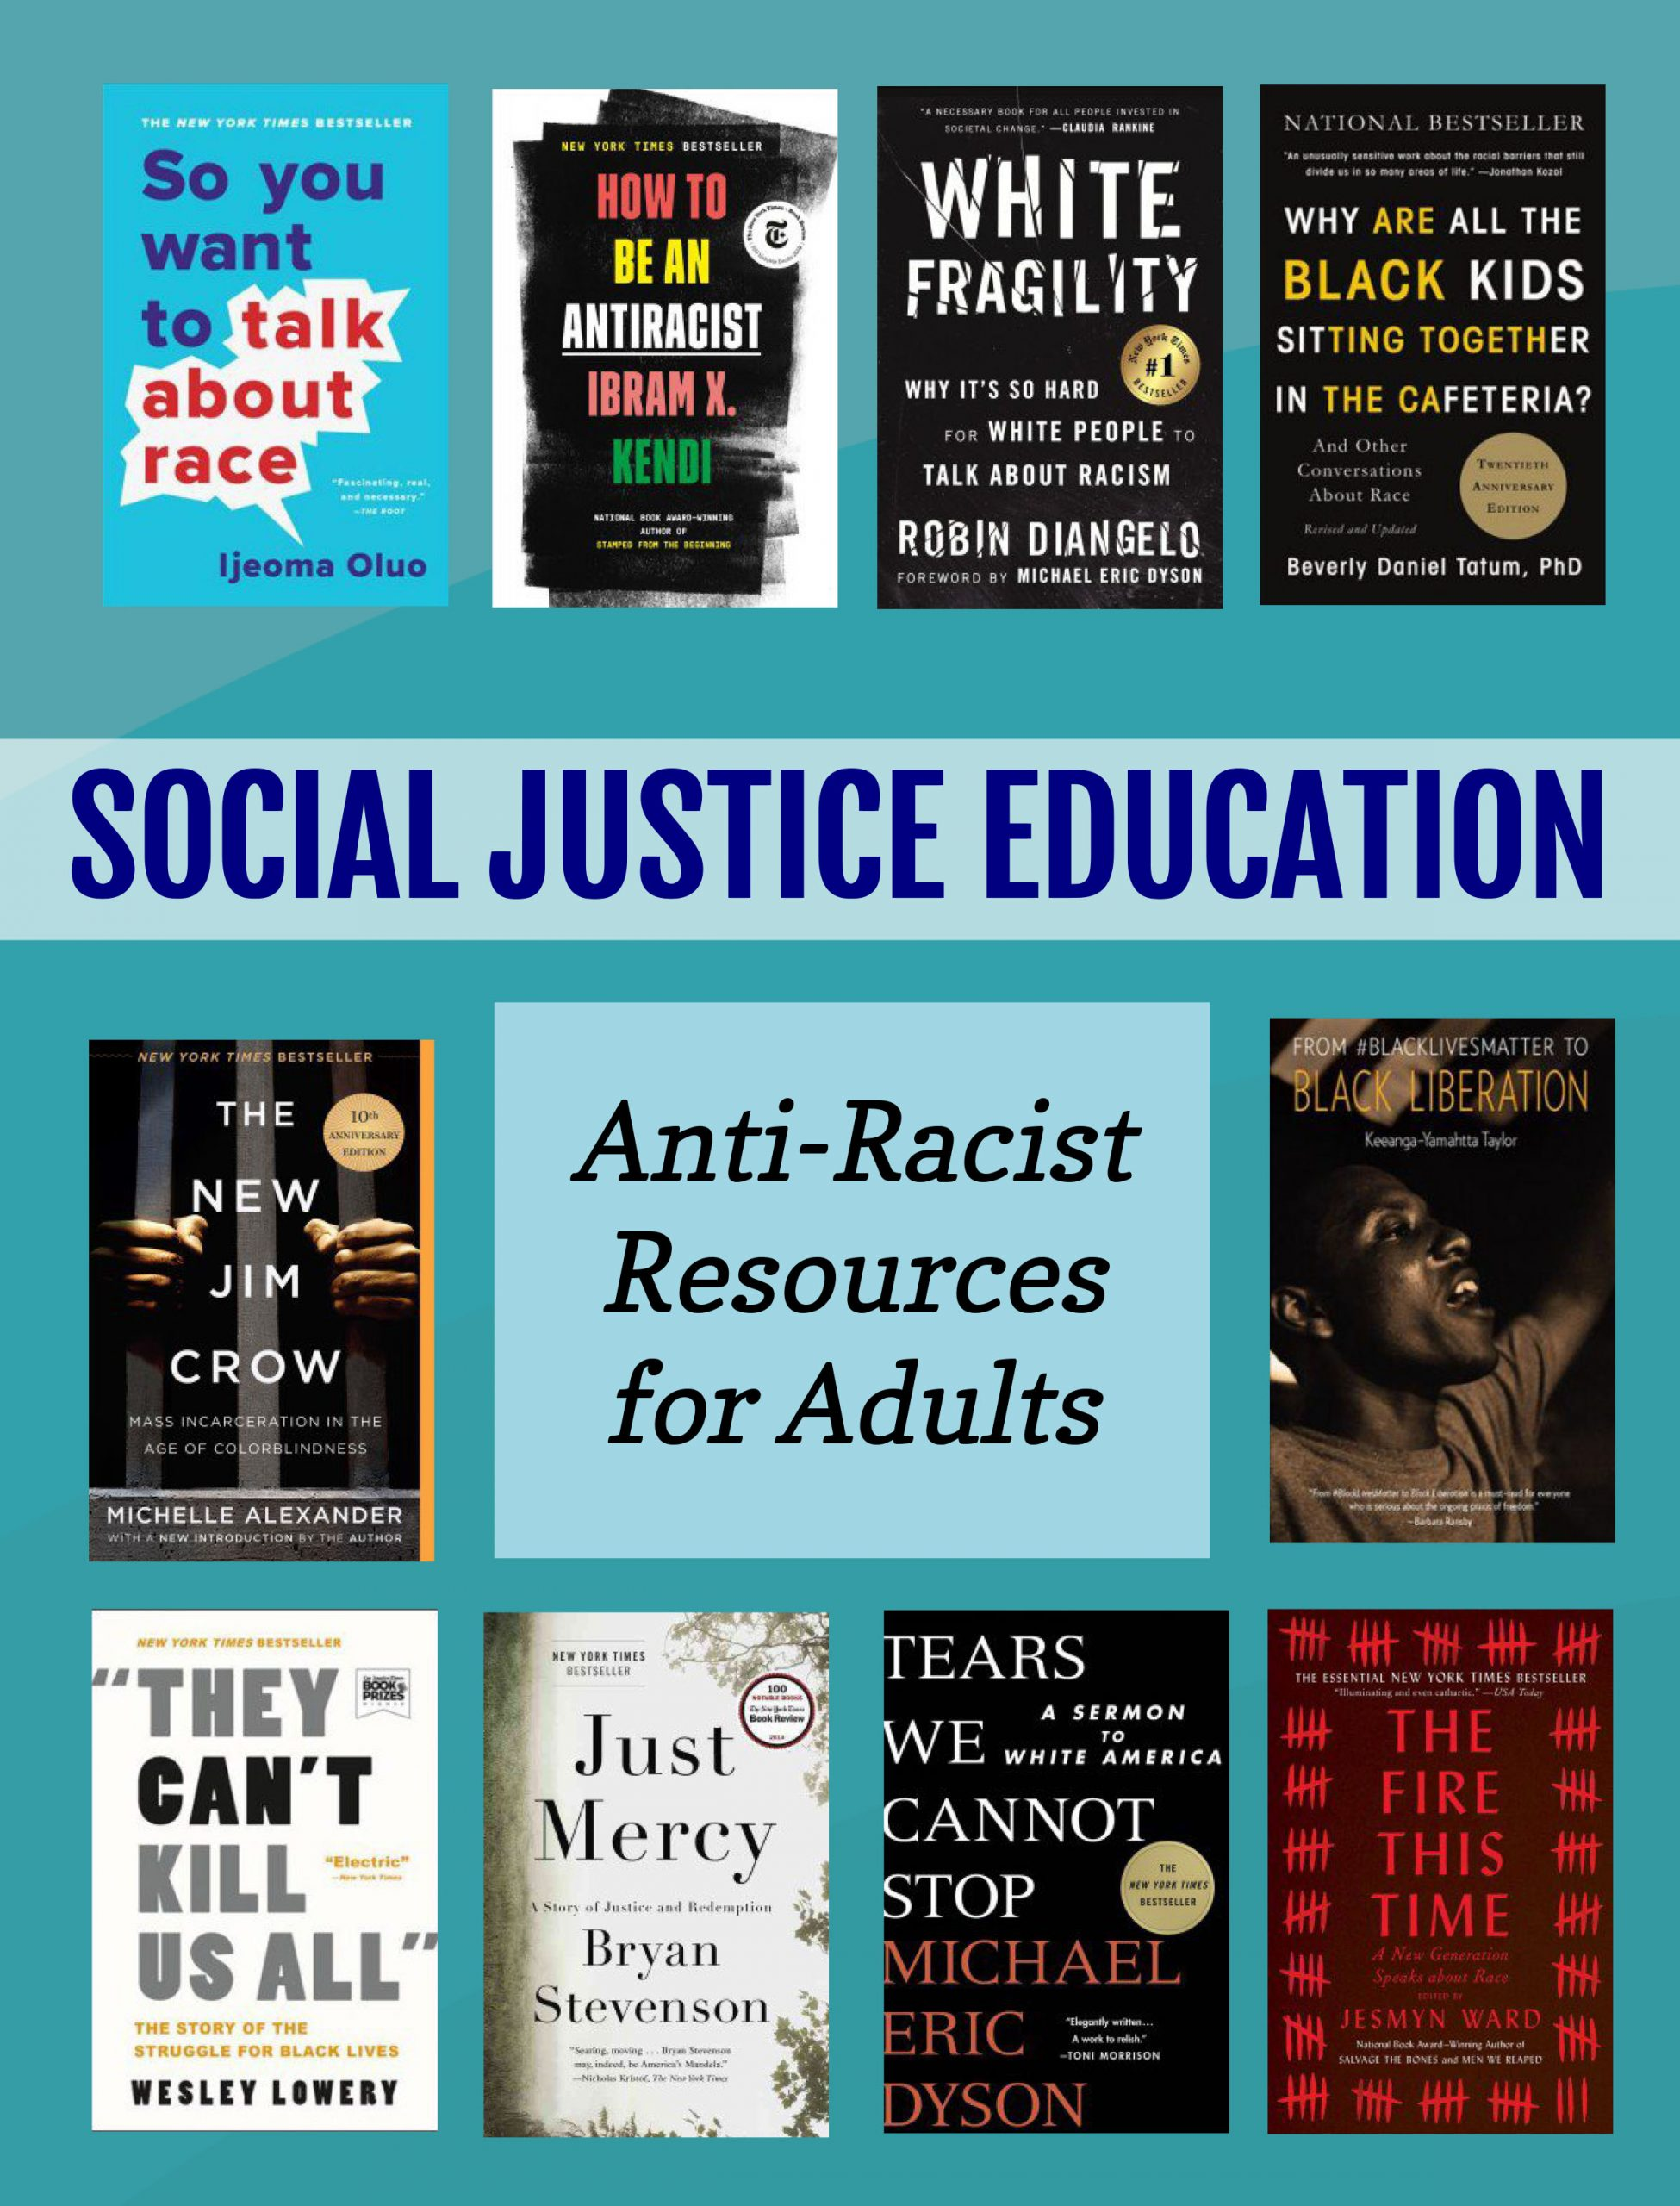 image of social justice educational books for adults